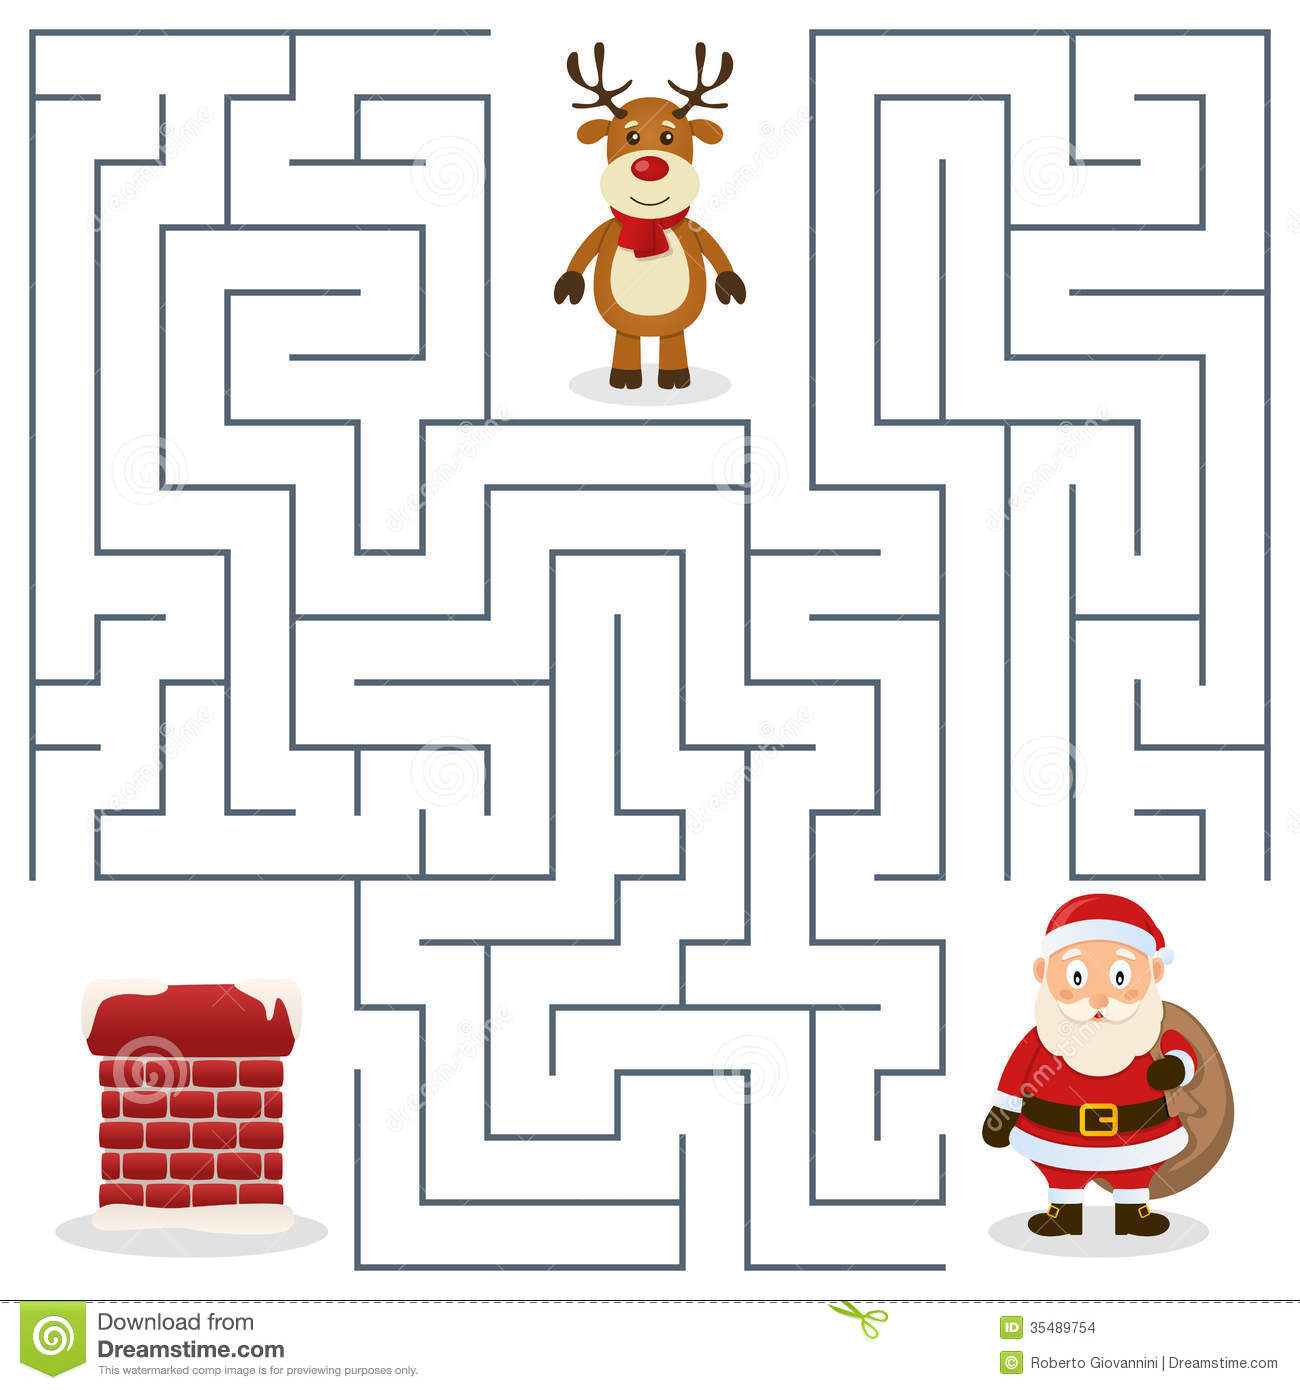 Displaying 16> Images For - Christmas Maze For Kids...